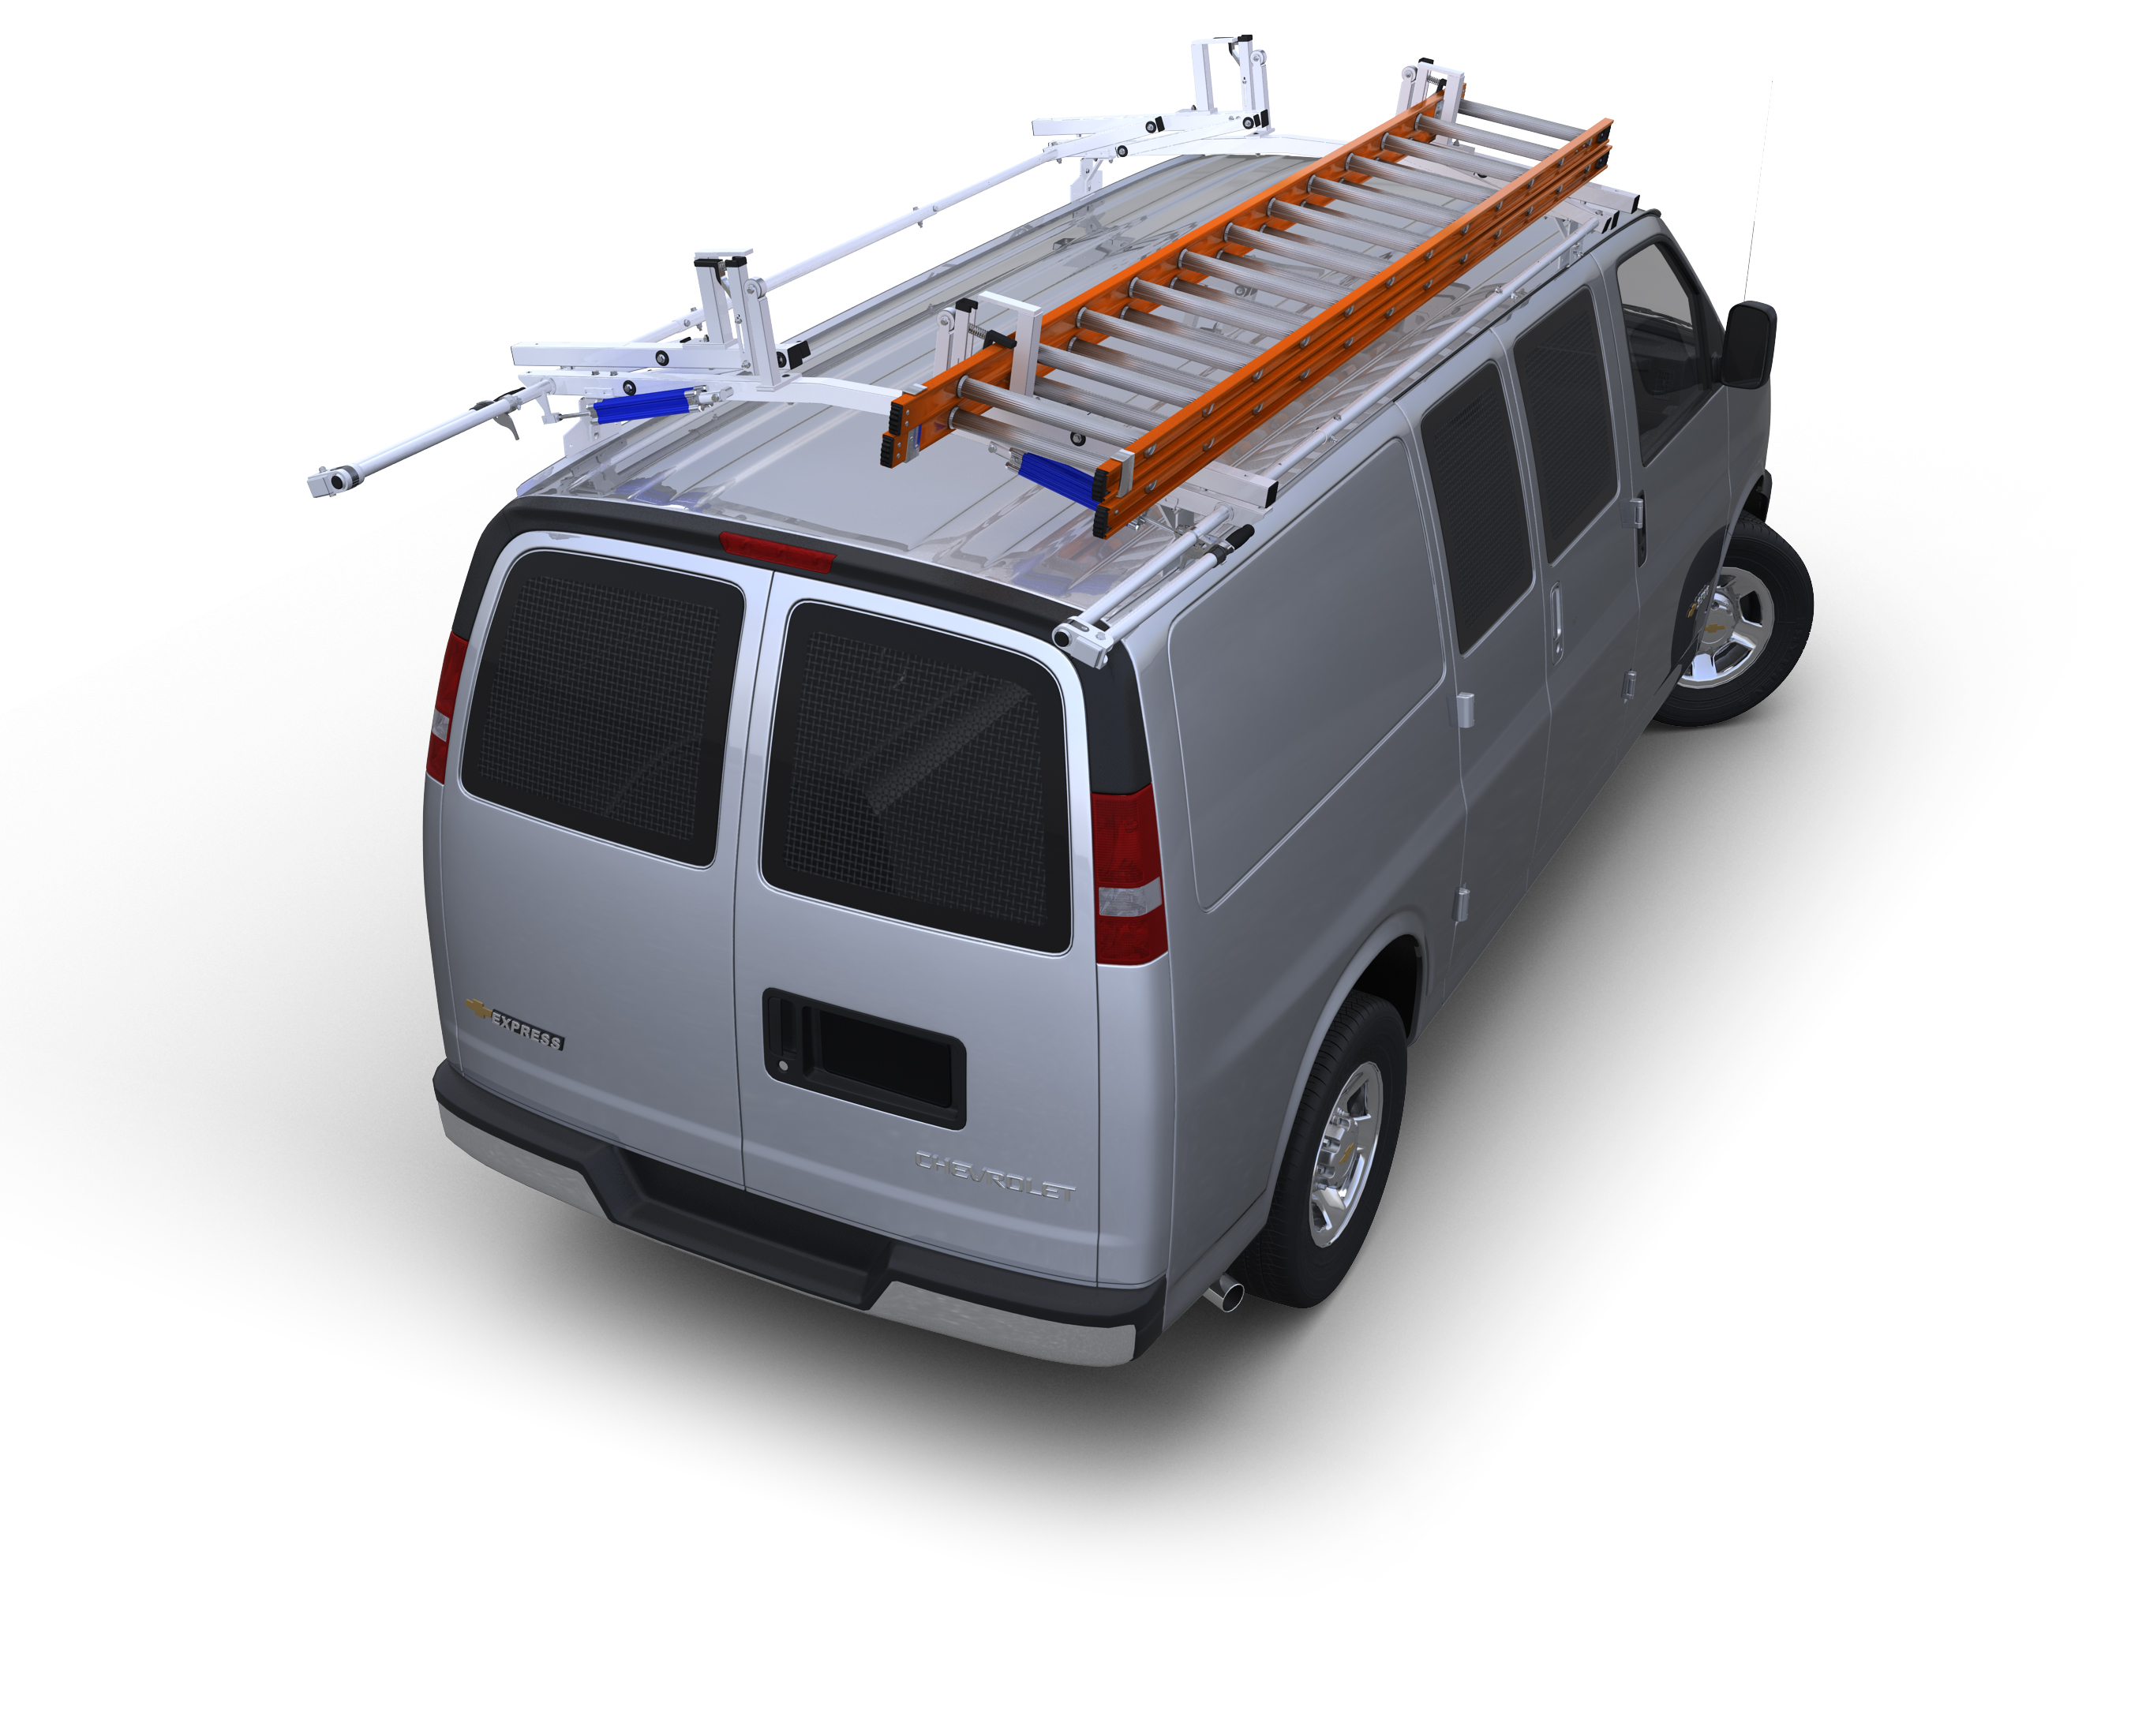 Modular Storage Units for High Roof Vans w/ Carry Cases & Drawers